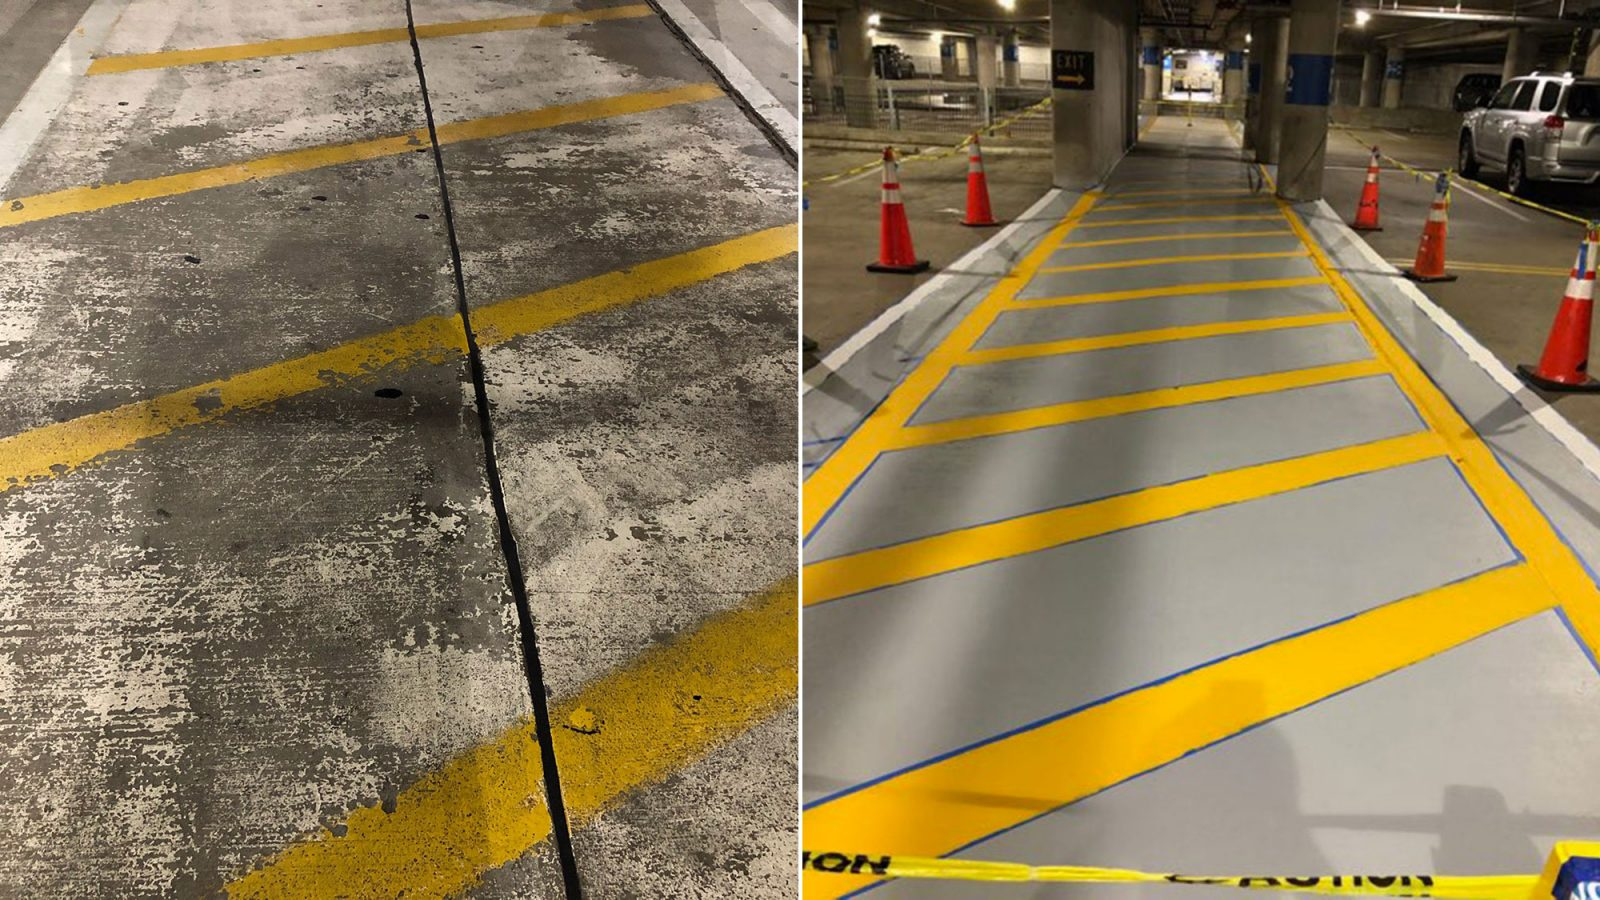 Side-by-side view of the parking lot before and after renovations and construction